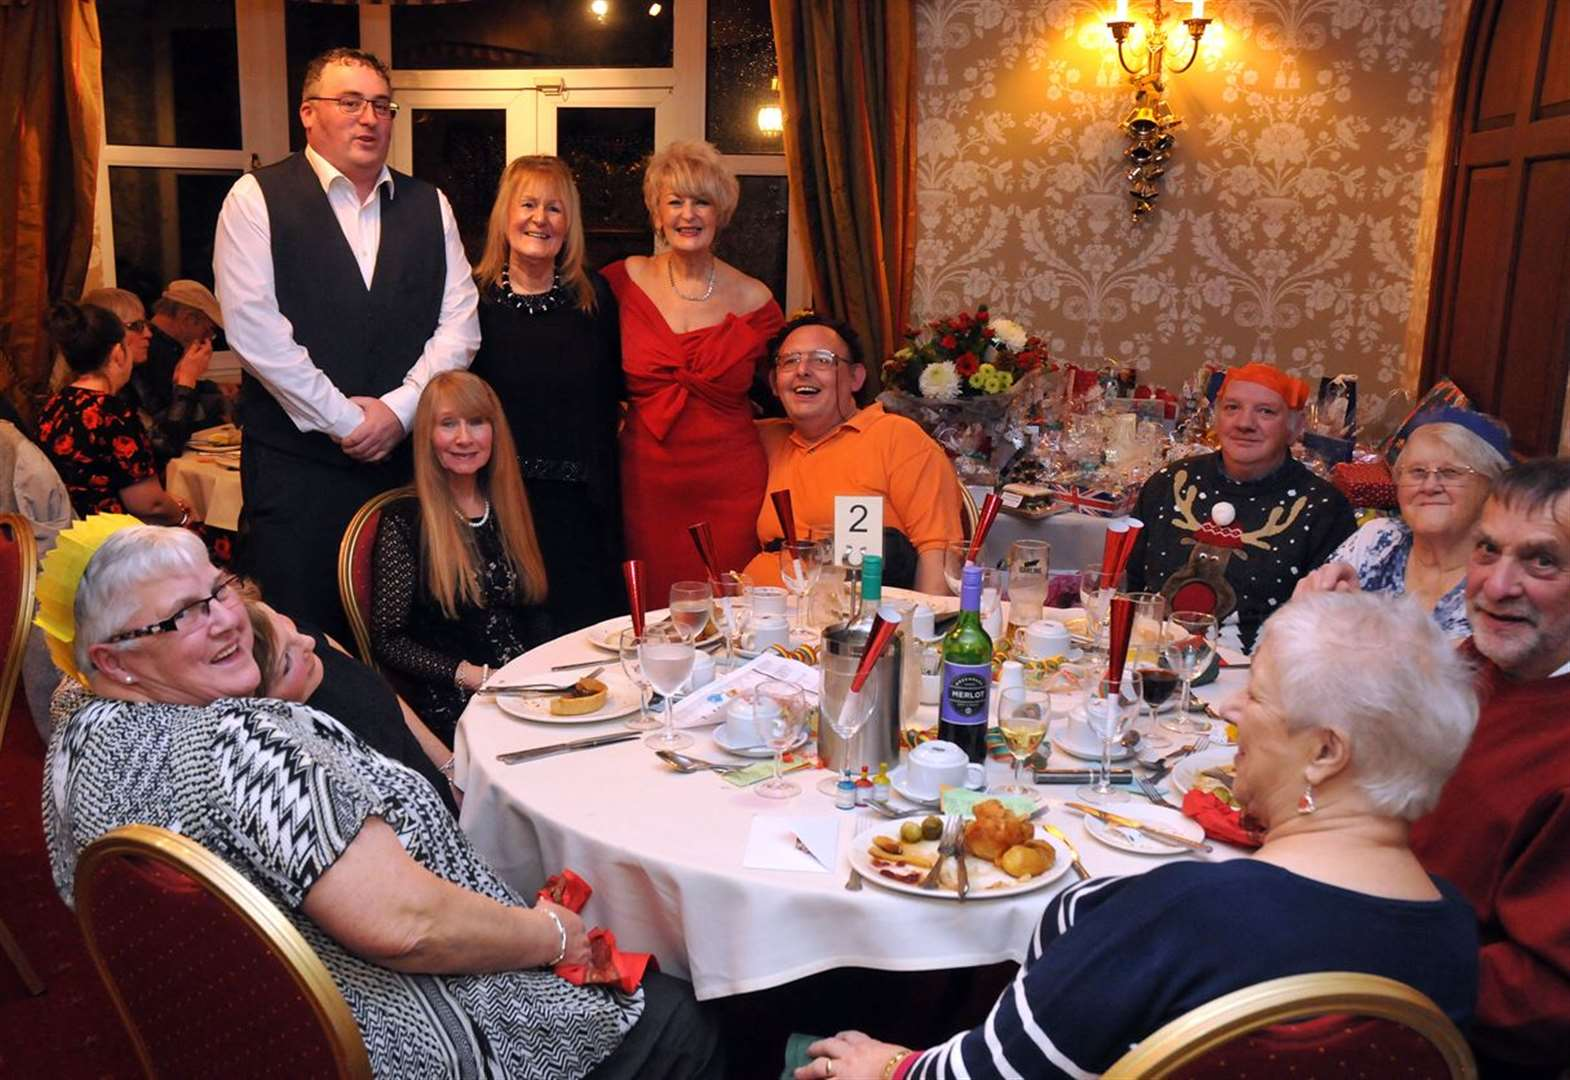 PHOTO GALLERY: Night out and hotel meal for people of St Paul's